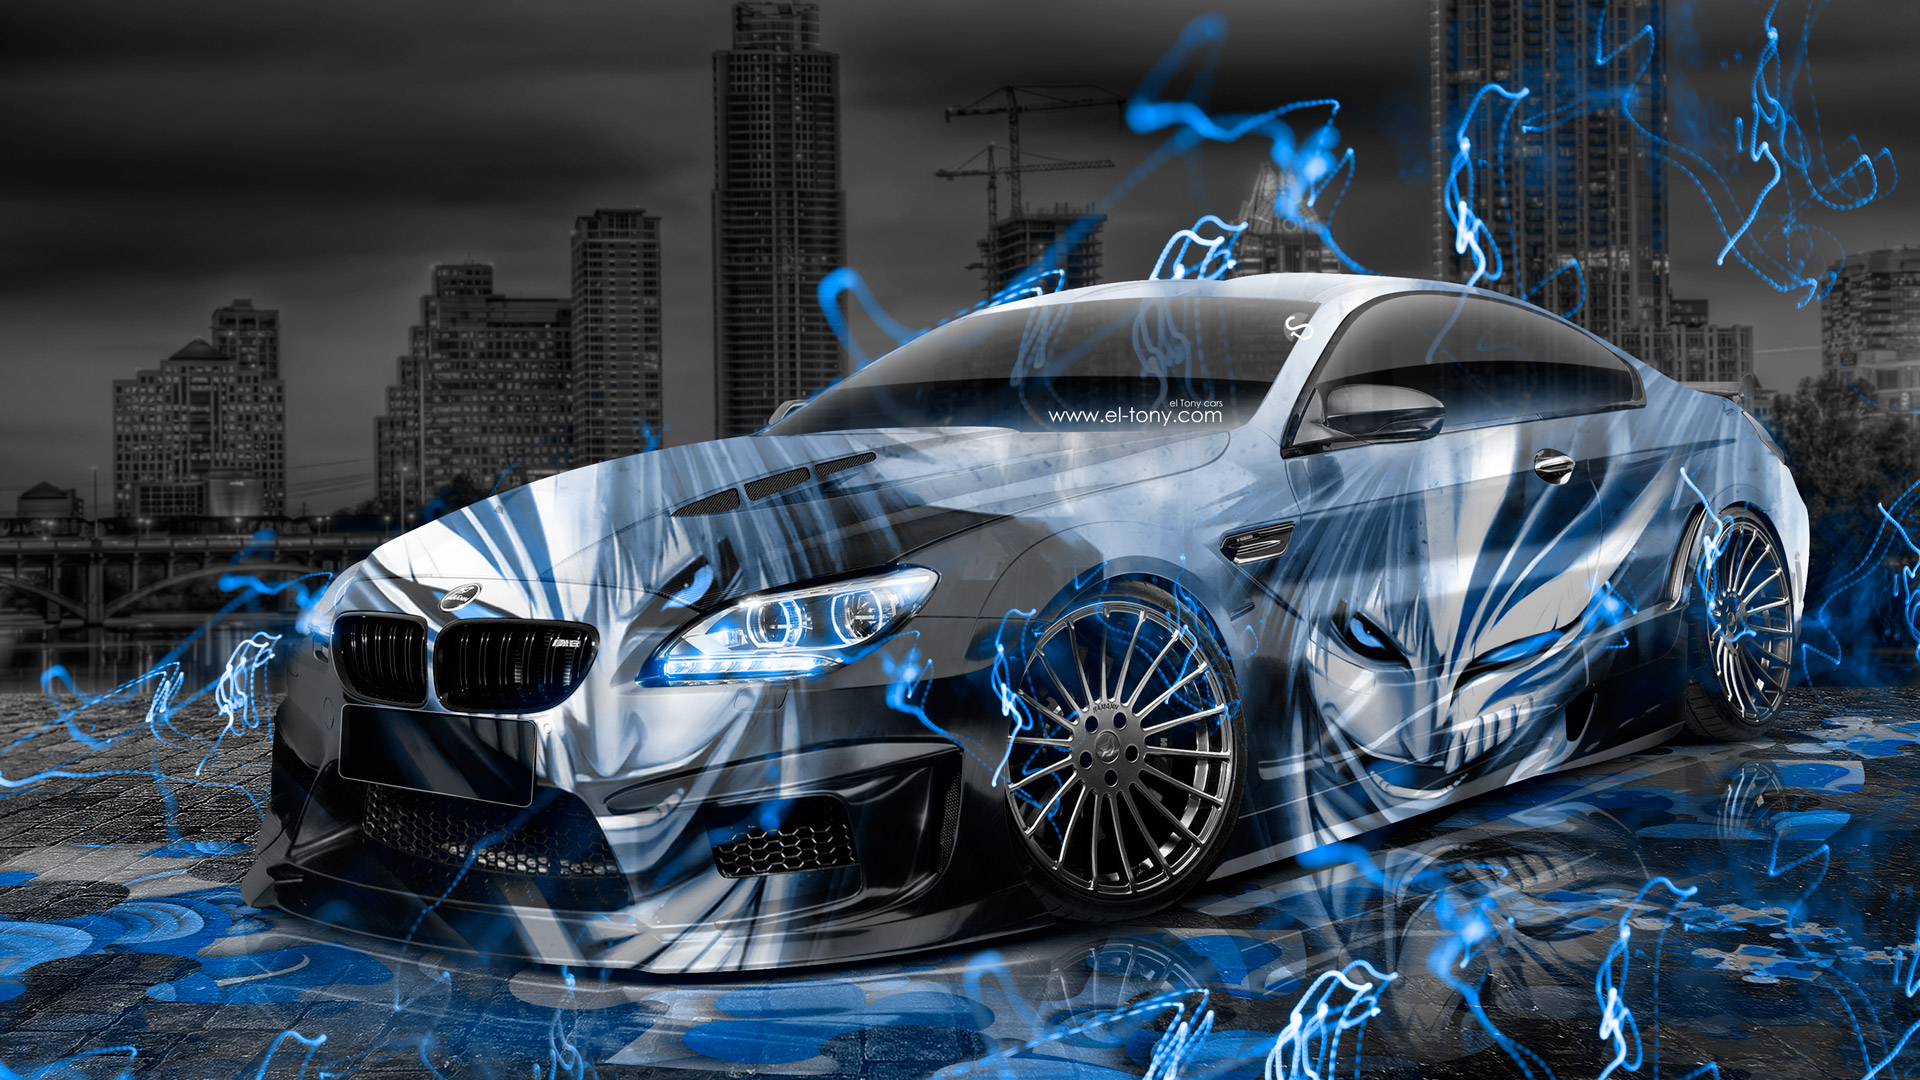 Bmw M6 Hamann Tuning Anime Bleach Aerography City Car 2015